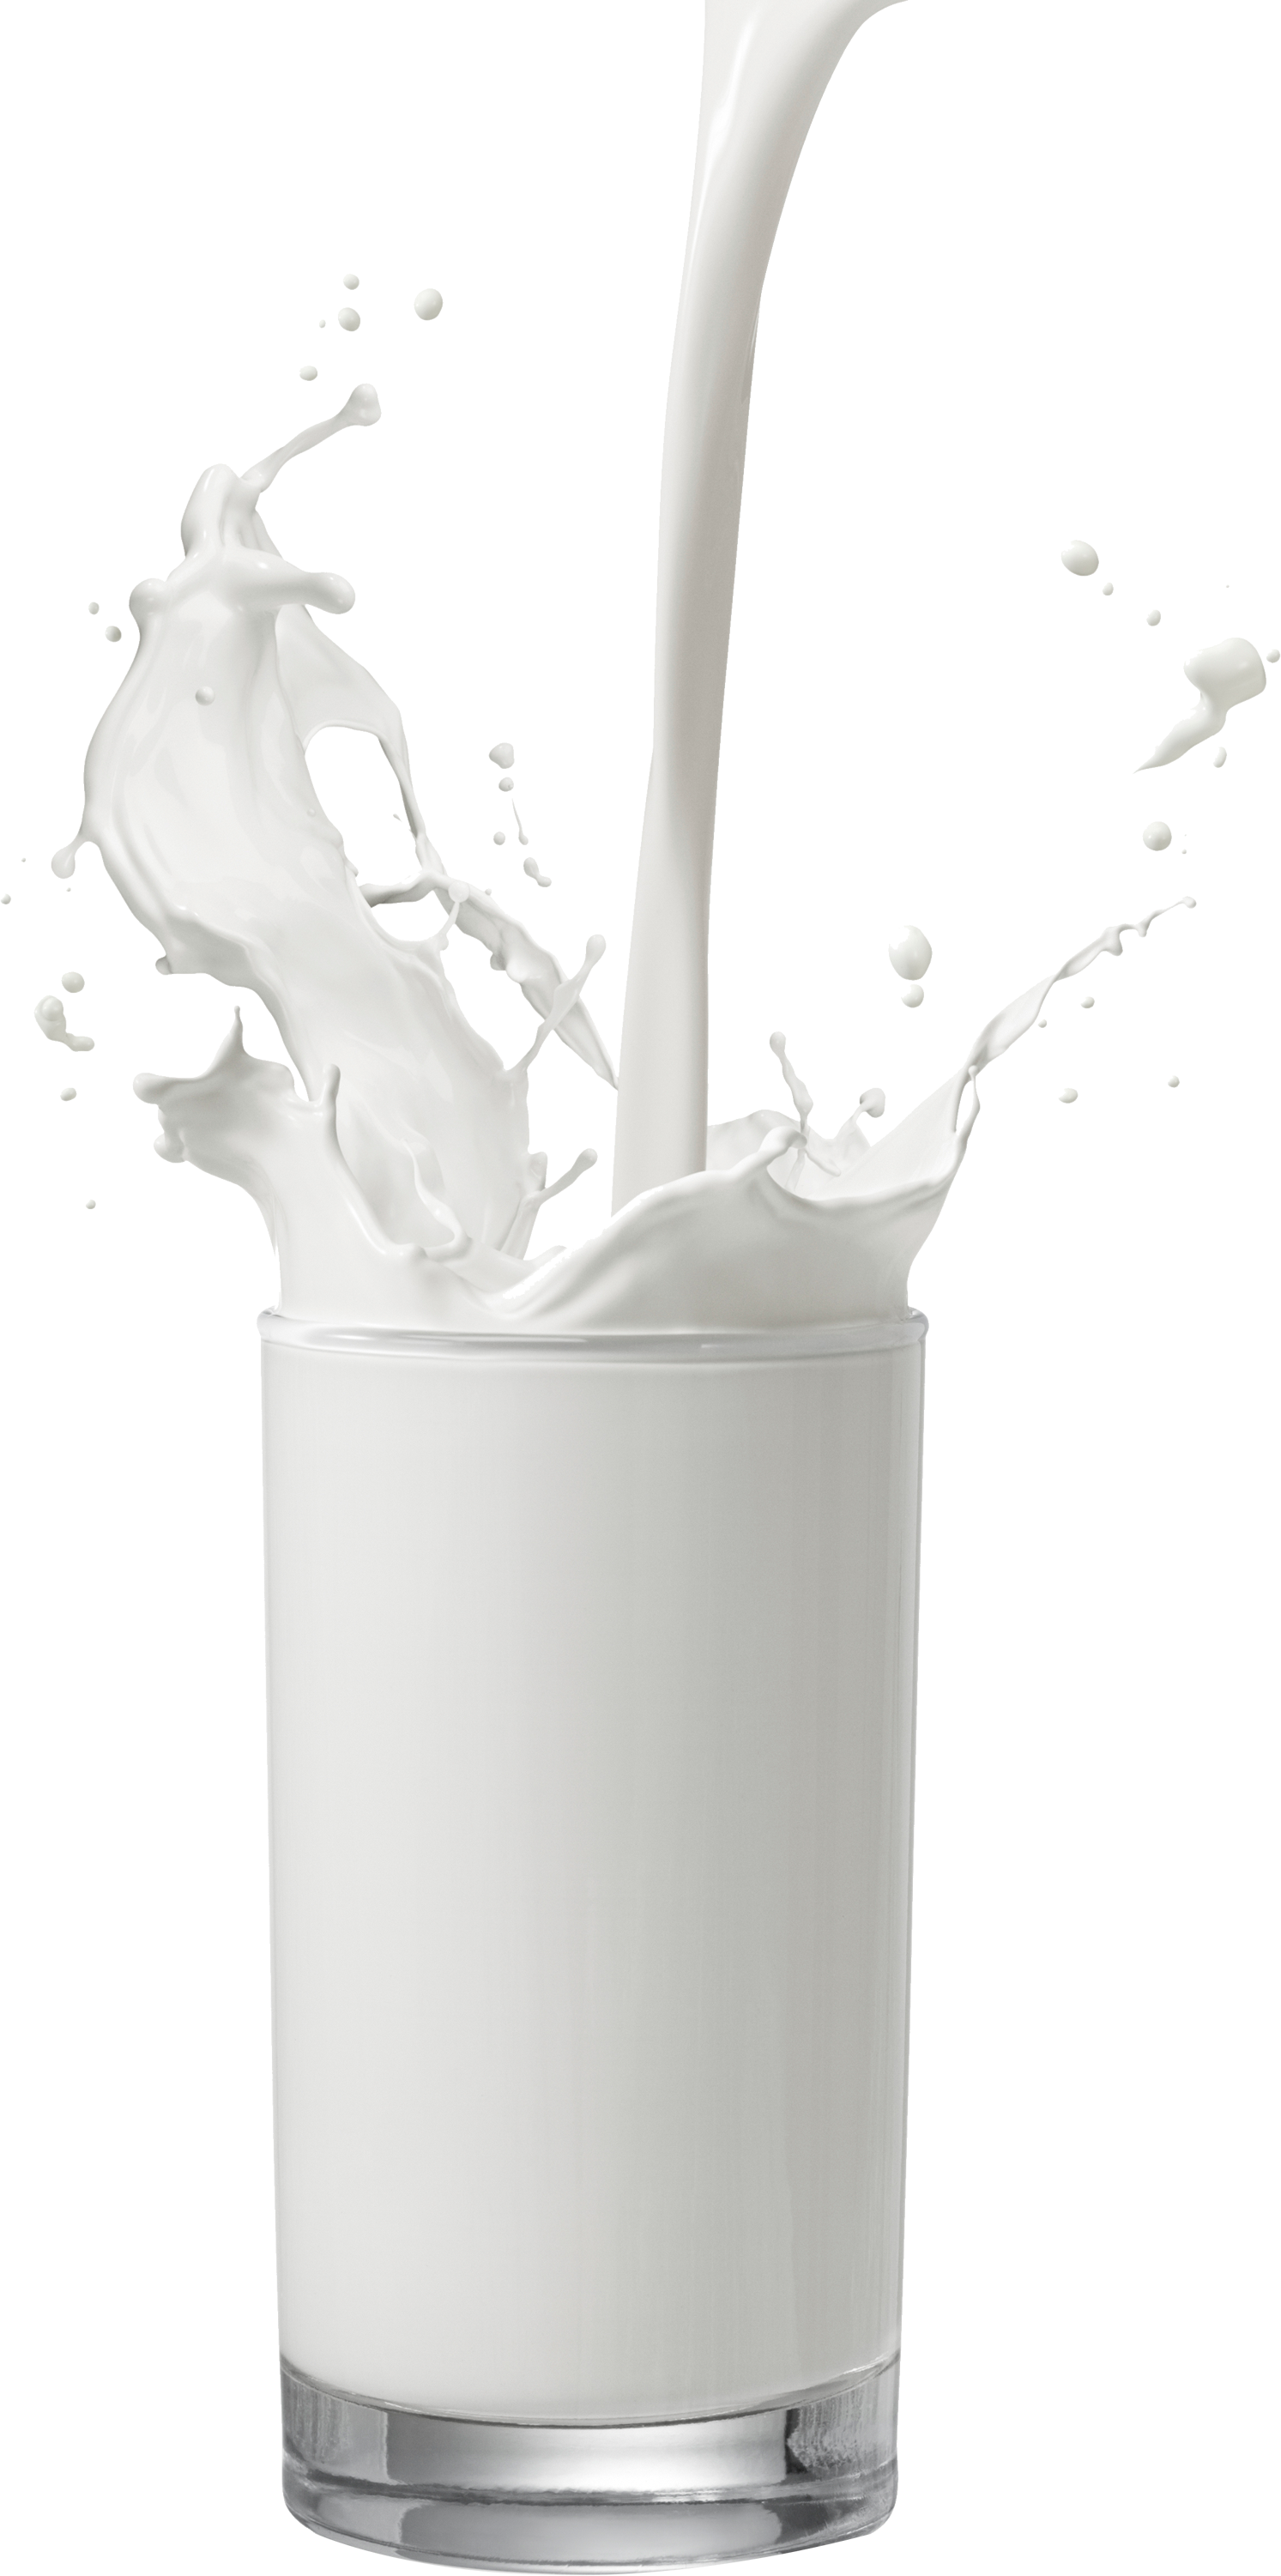 Cup of milk png. Images free download jar